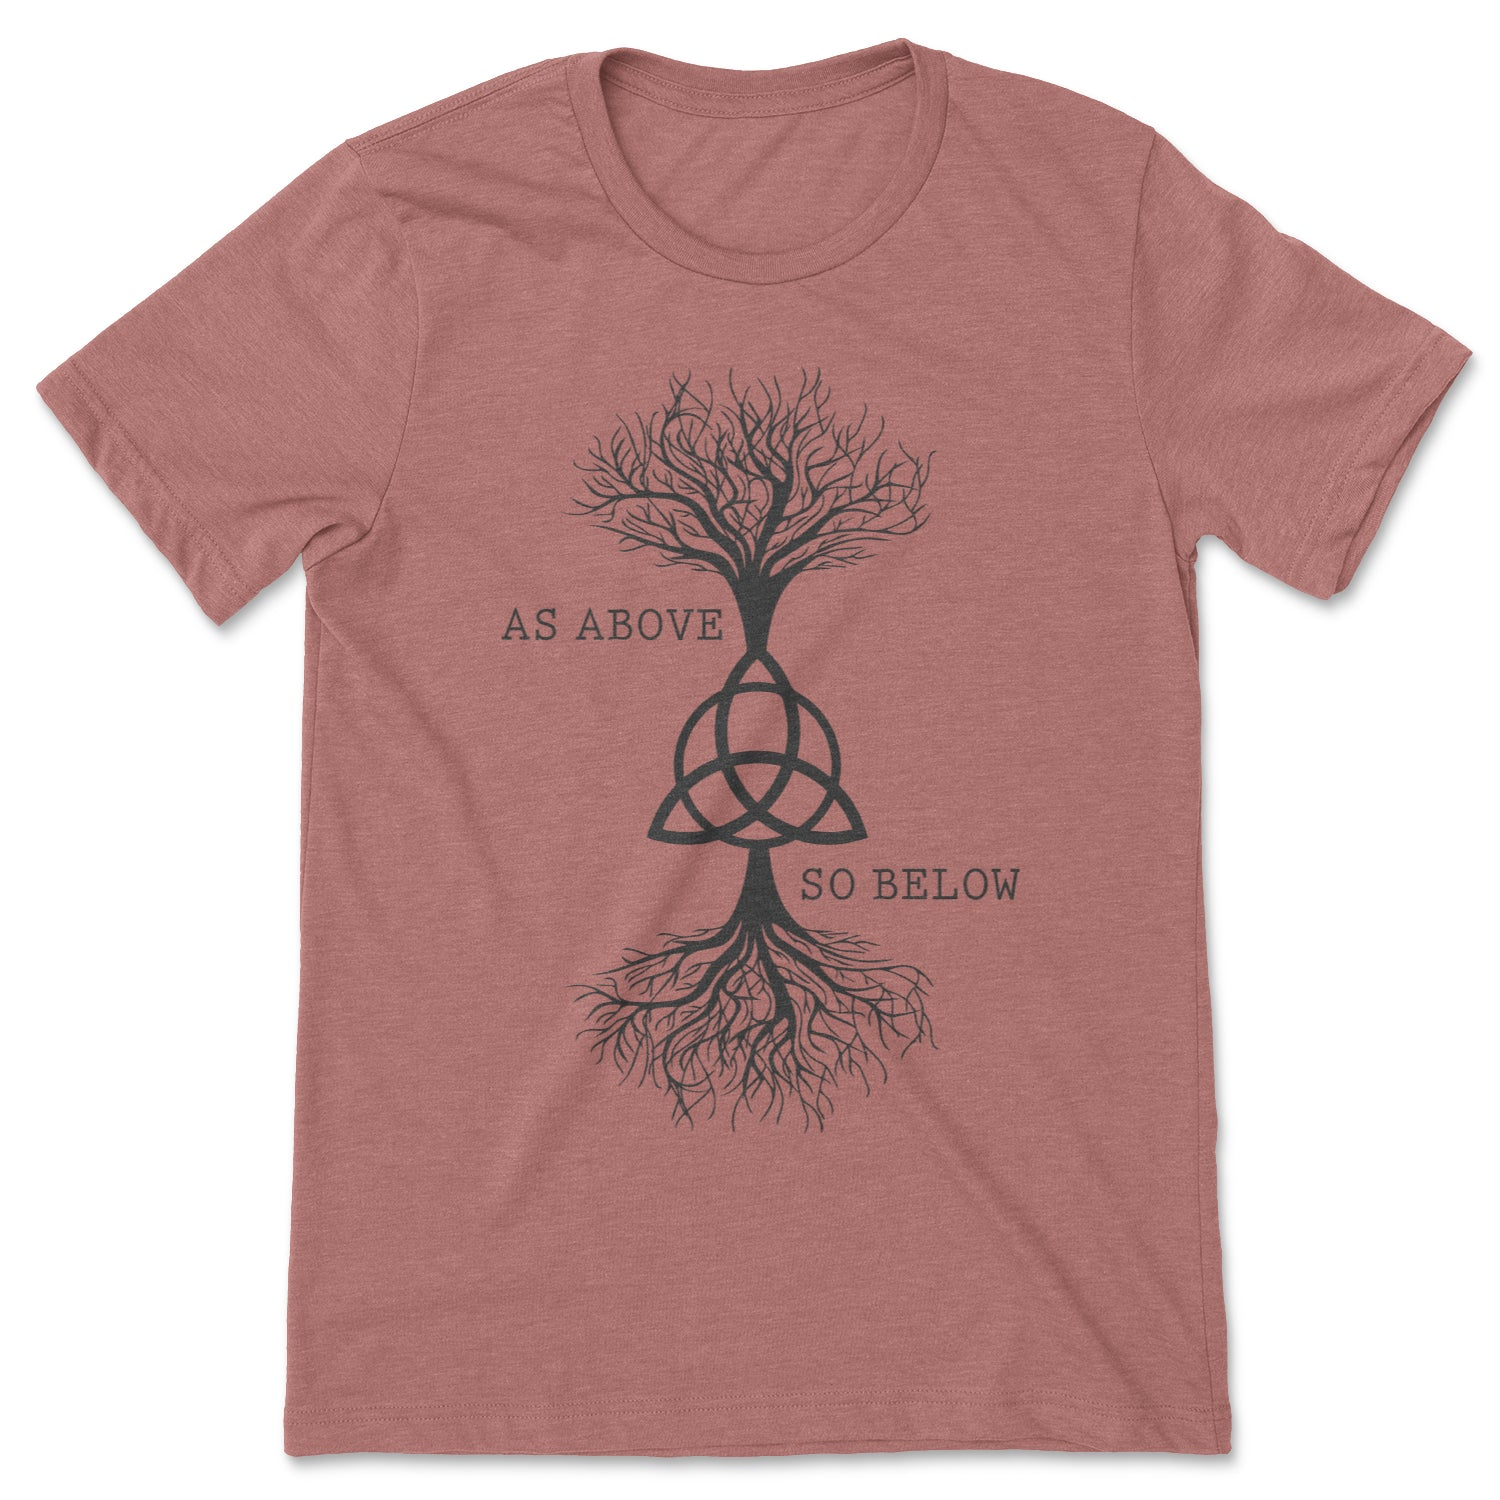 As Above So Below Unisex Short Sleeve Shirt